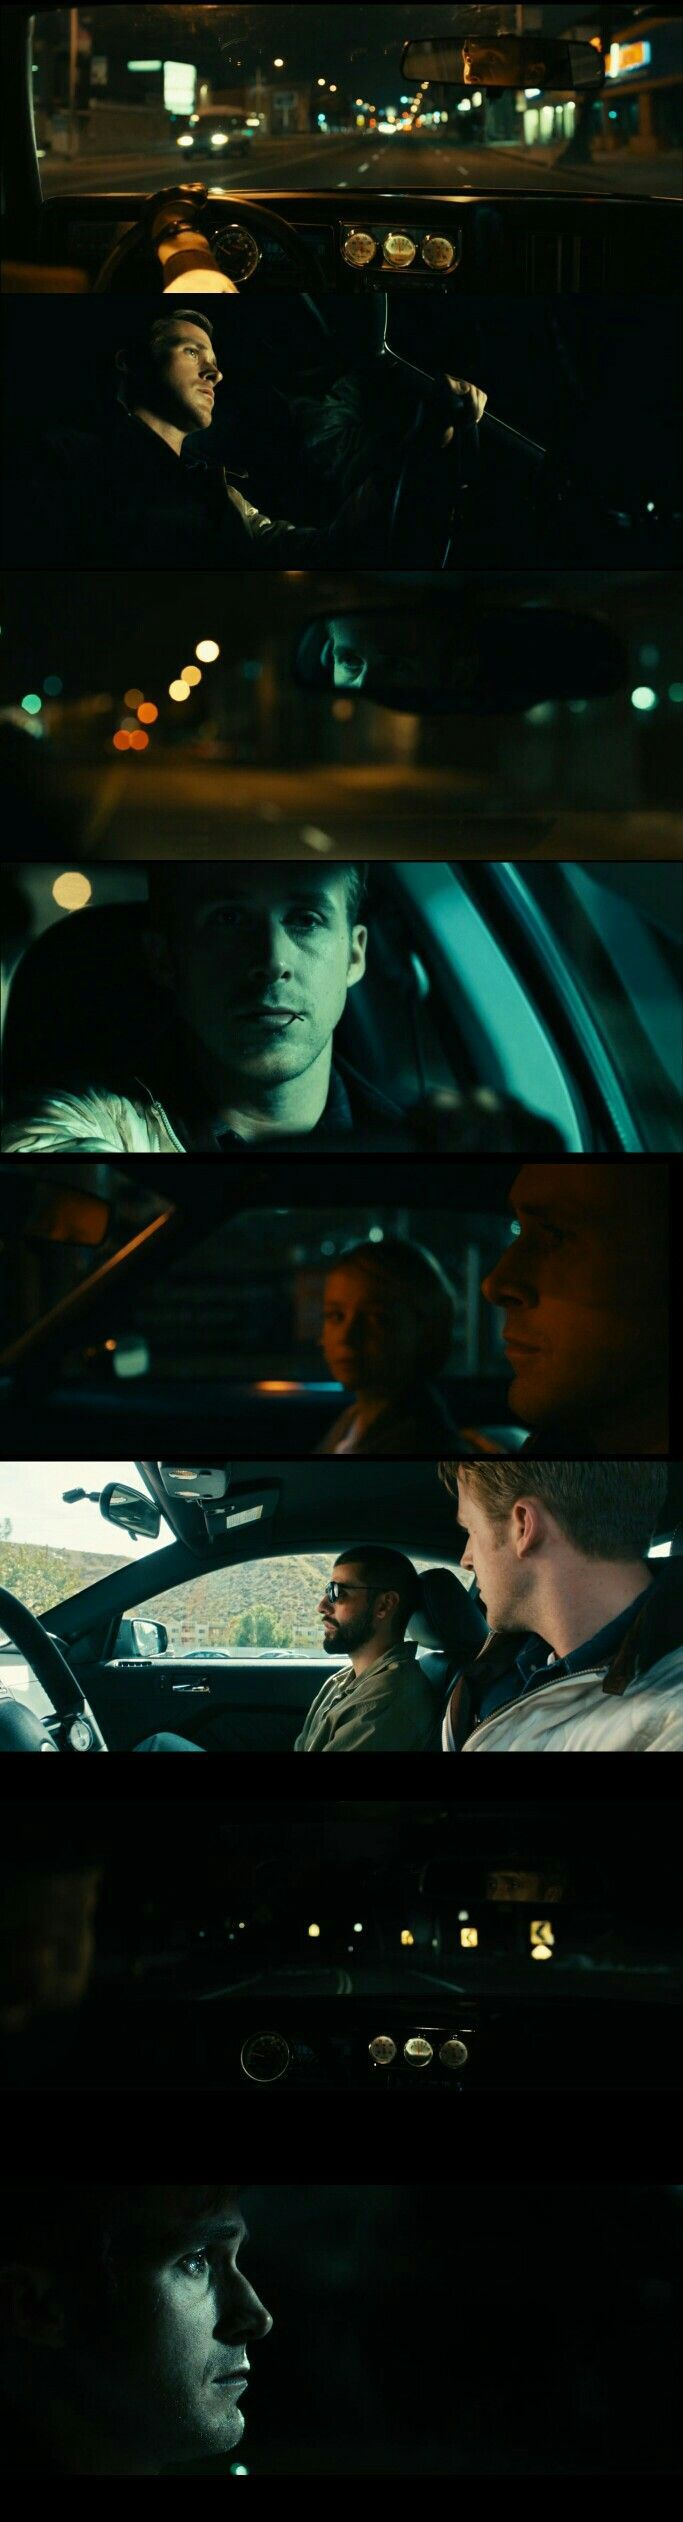 Drive(2011) Directed by Nicolas Winding Refn. #Filmmaking